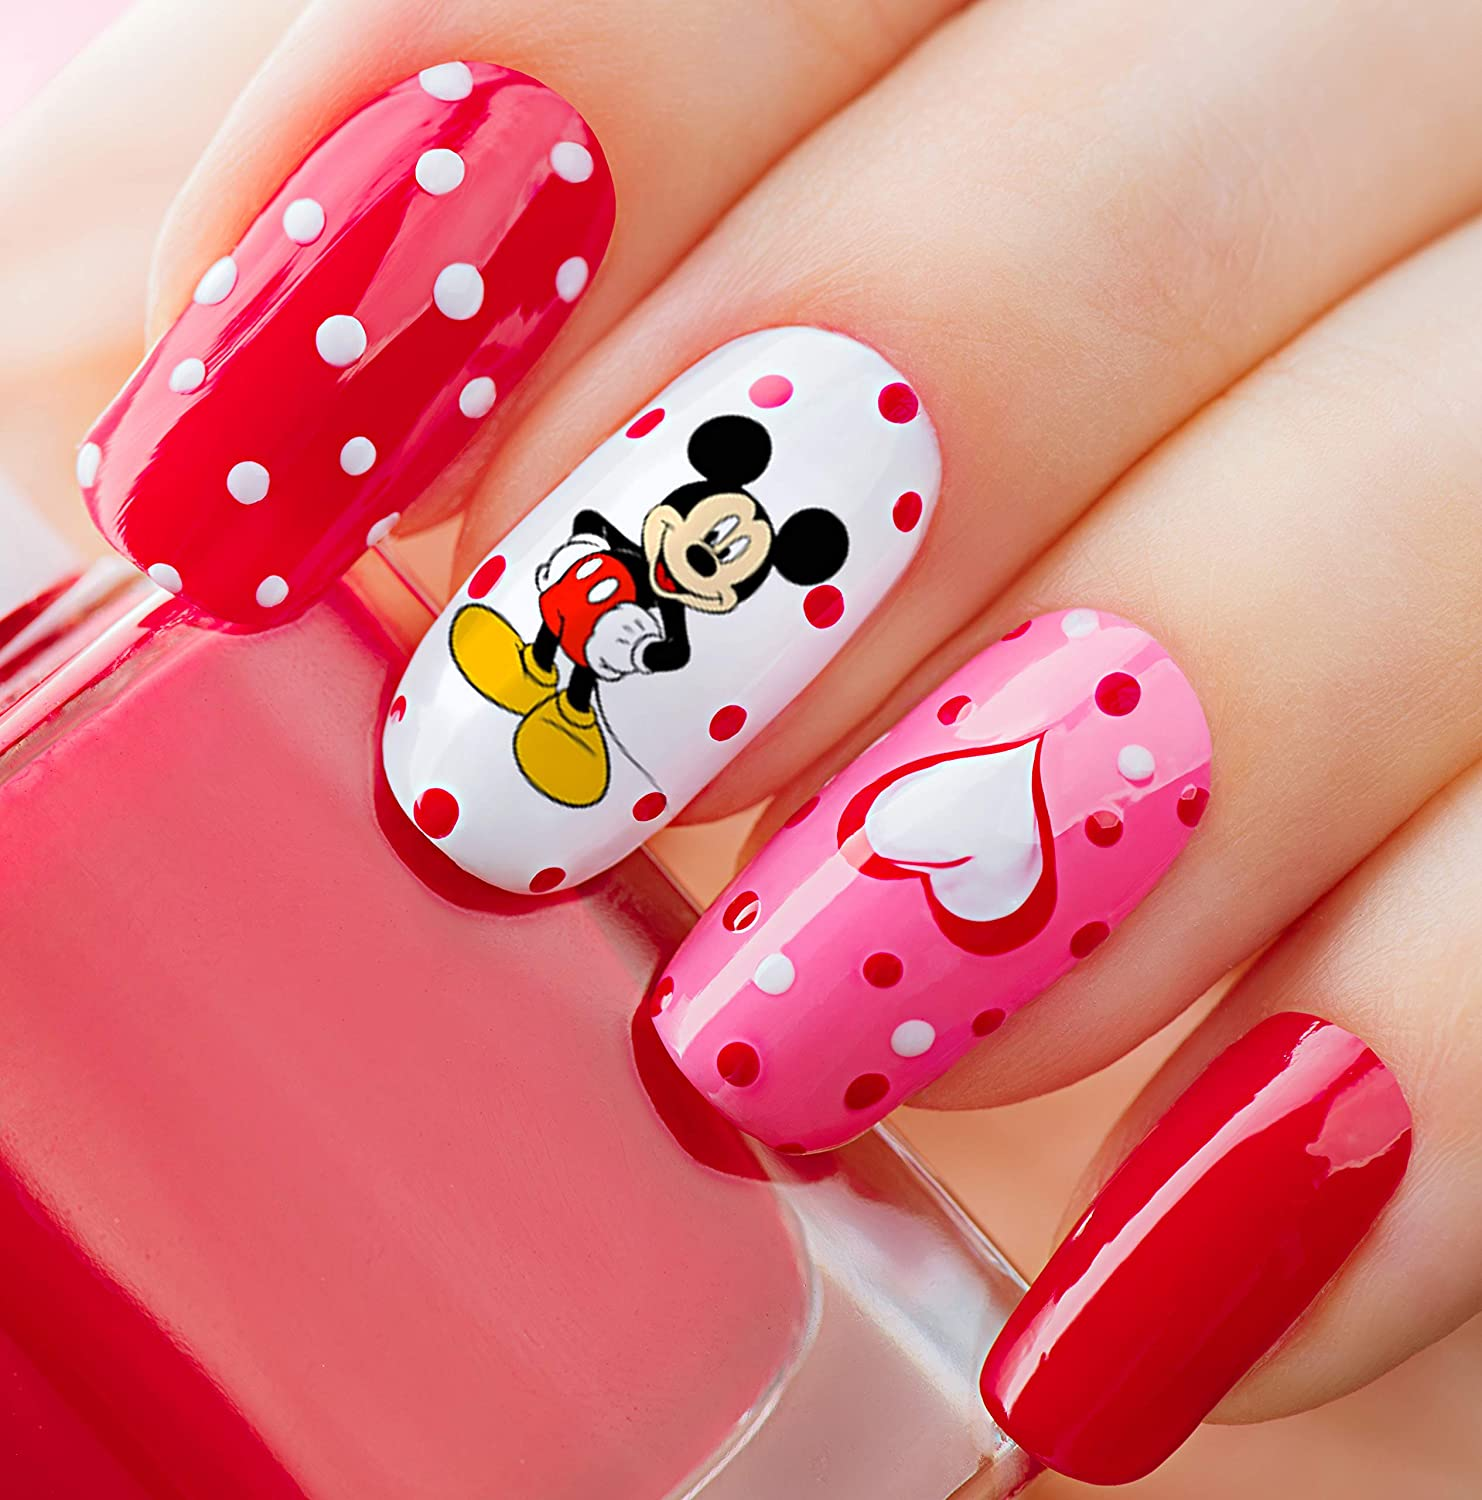 Buy Mickey Mouse & Minnie Mouse Waterslide Nail Art Decals - Salon Quality  Online in Kazakhstan. B07Q3WMHHT